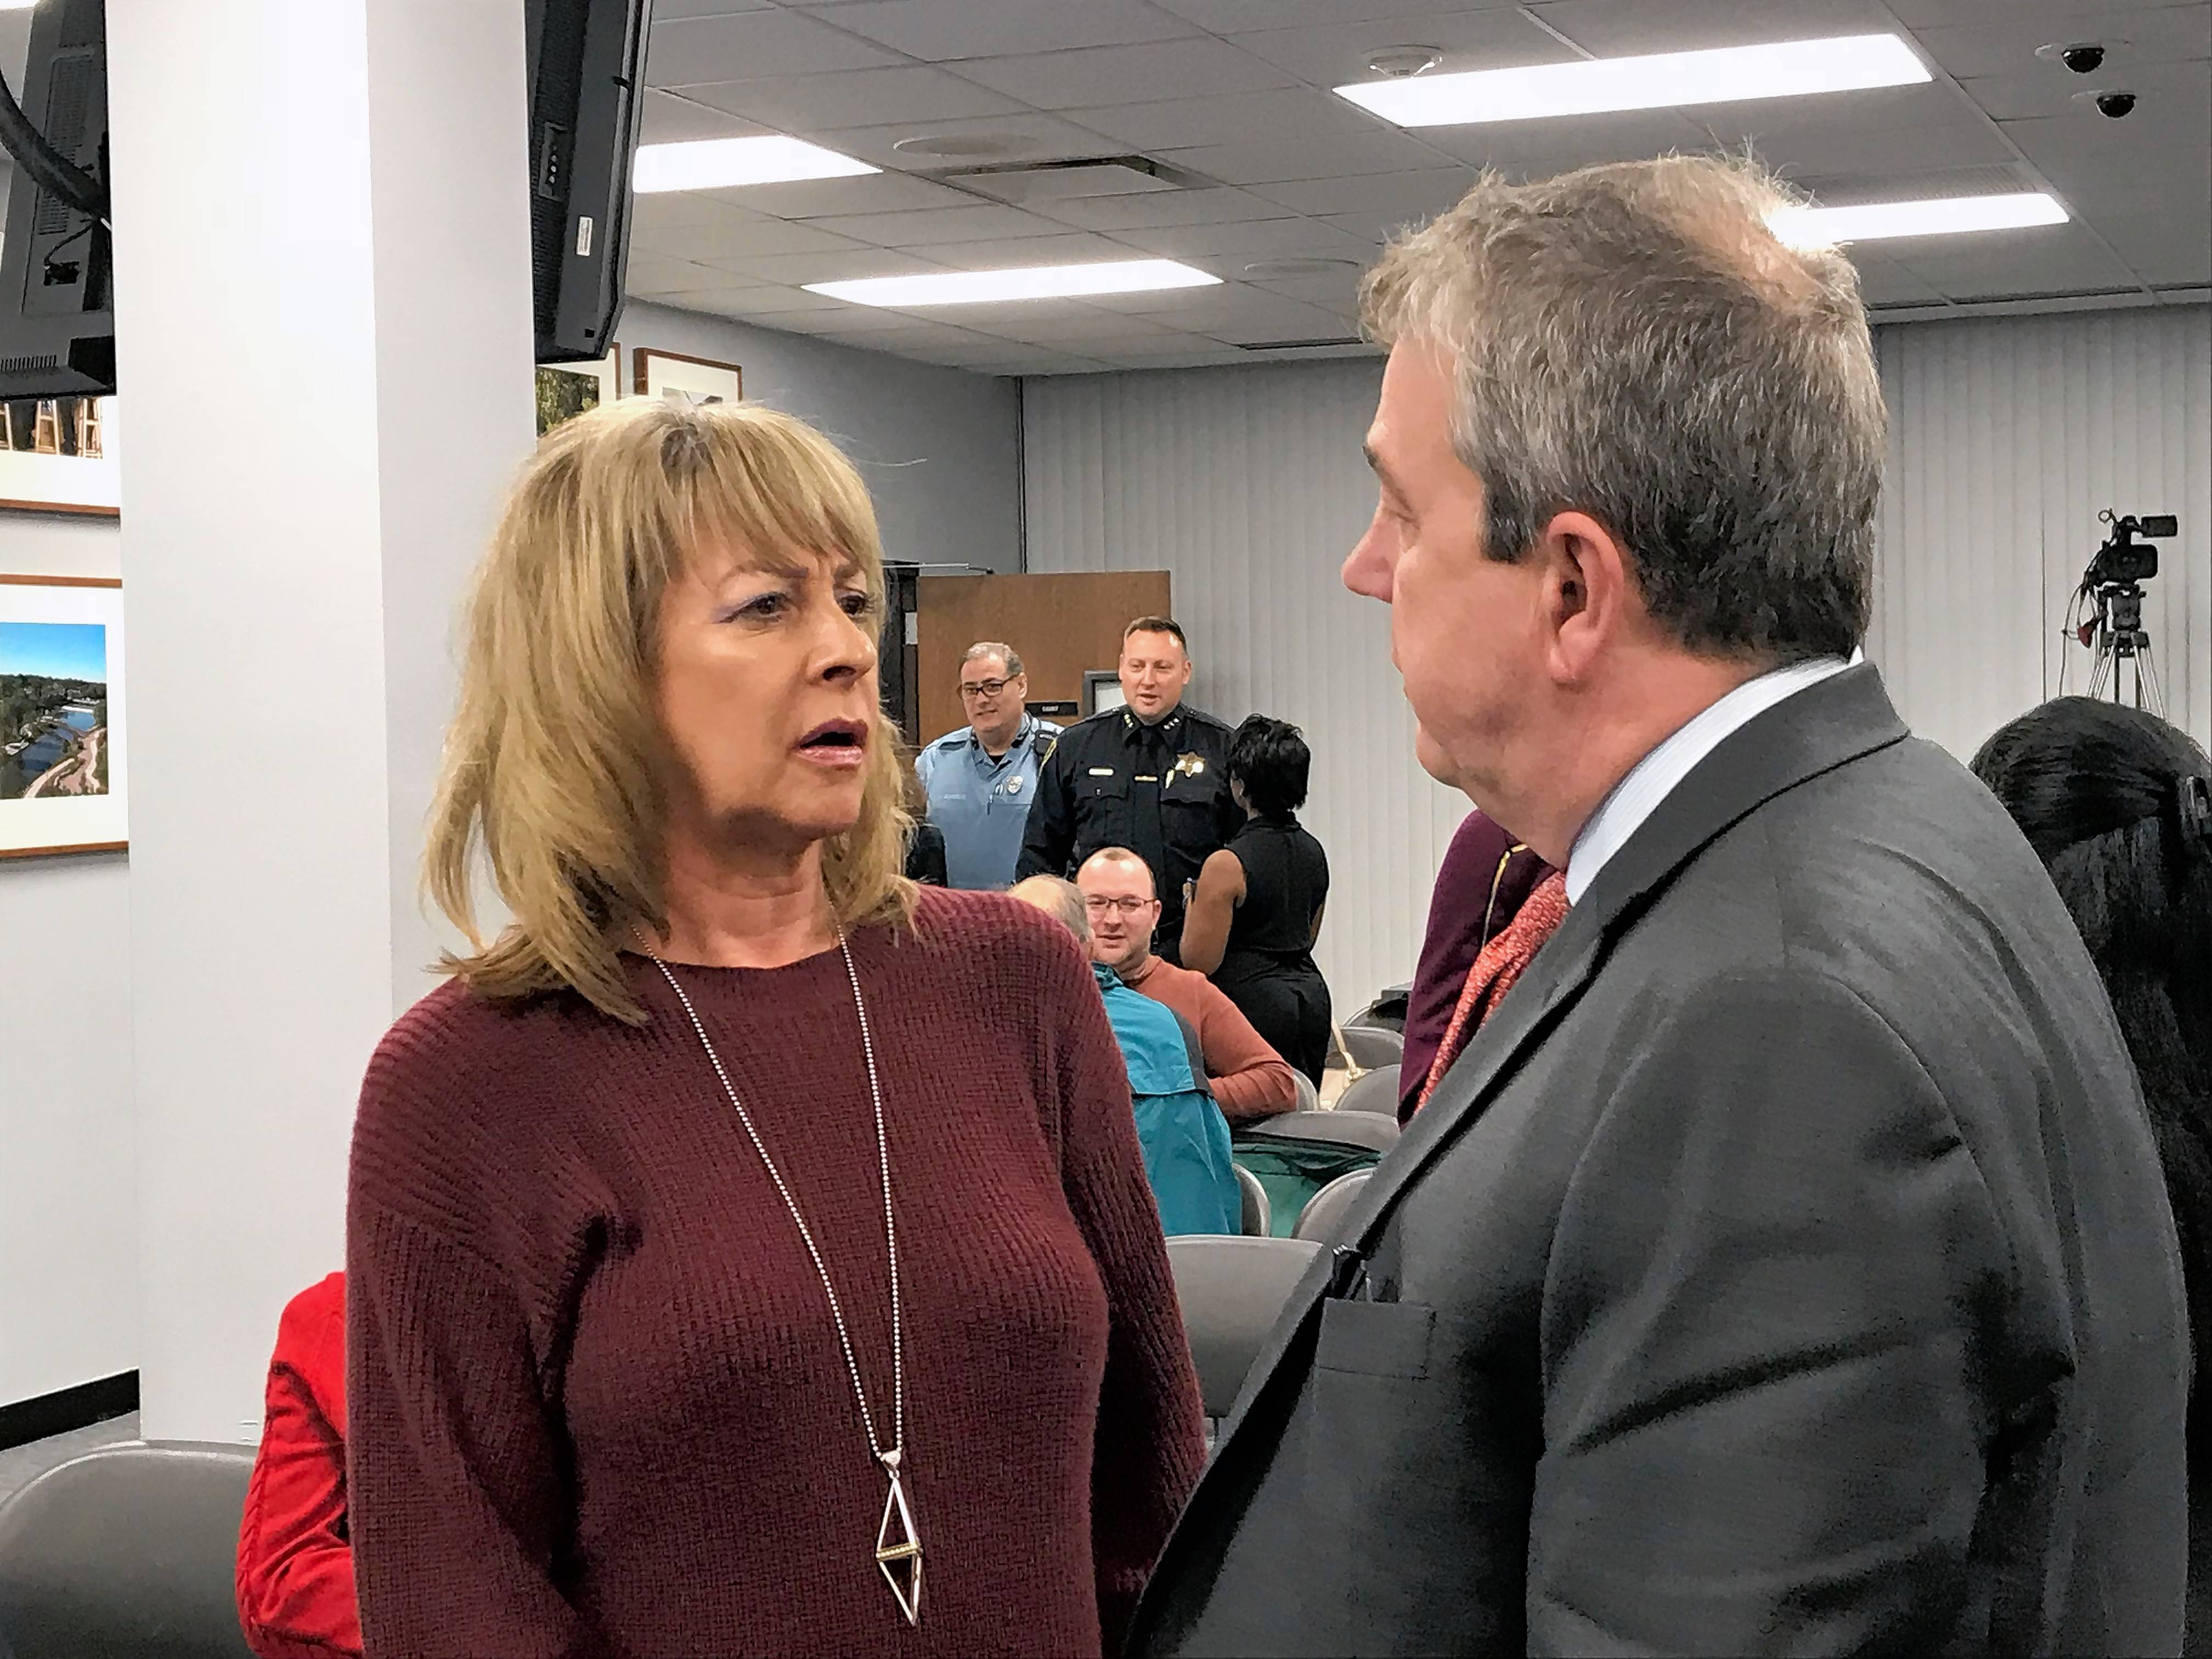 Kim Bless, CEO and president of the Elgin Area Convention and Visitors Bureau, makes $127,000 per year plus a vehicle stipend. The city, as a condition of its fiscal contribution, is considering setting a limit on the bureau's salaries.